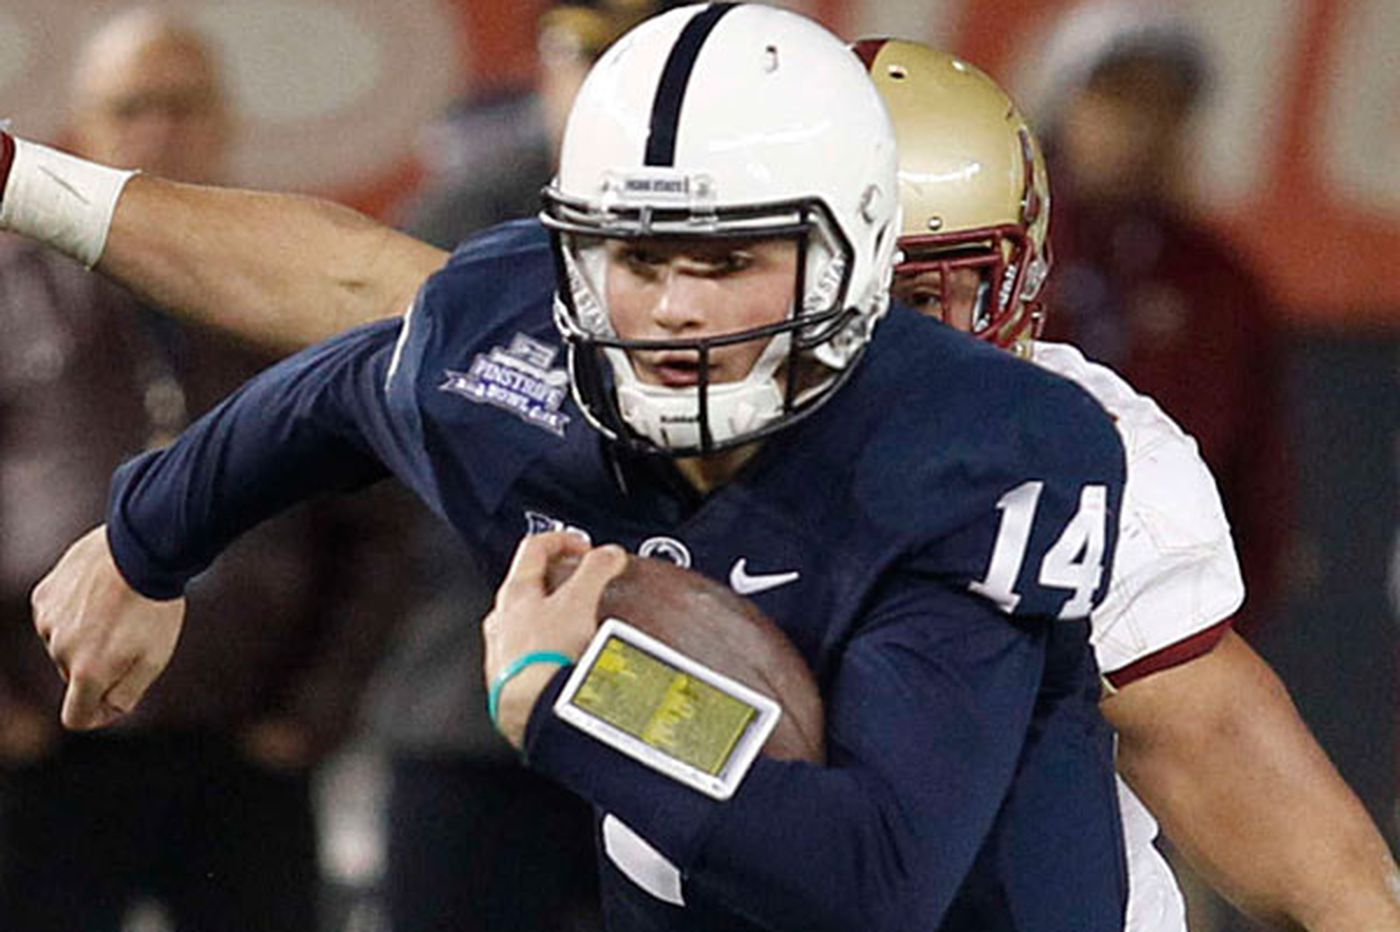 Ficken, Hackenberg deliver for Penn State